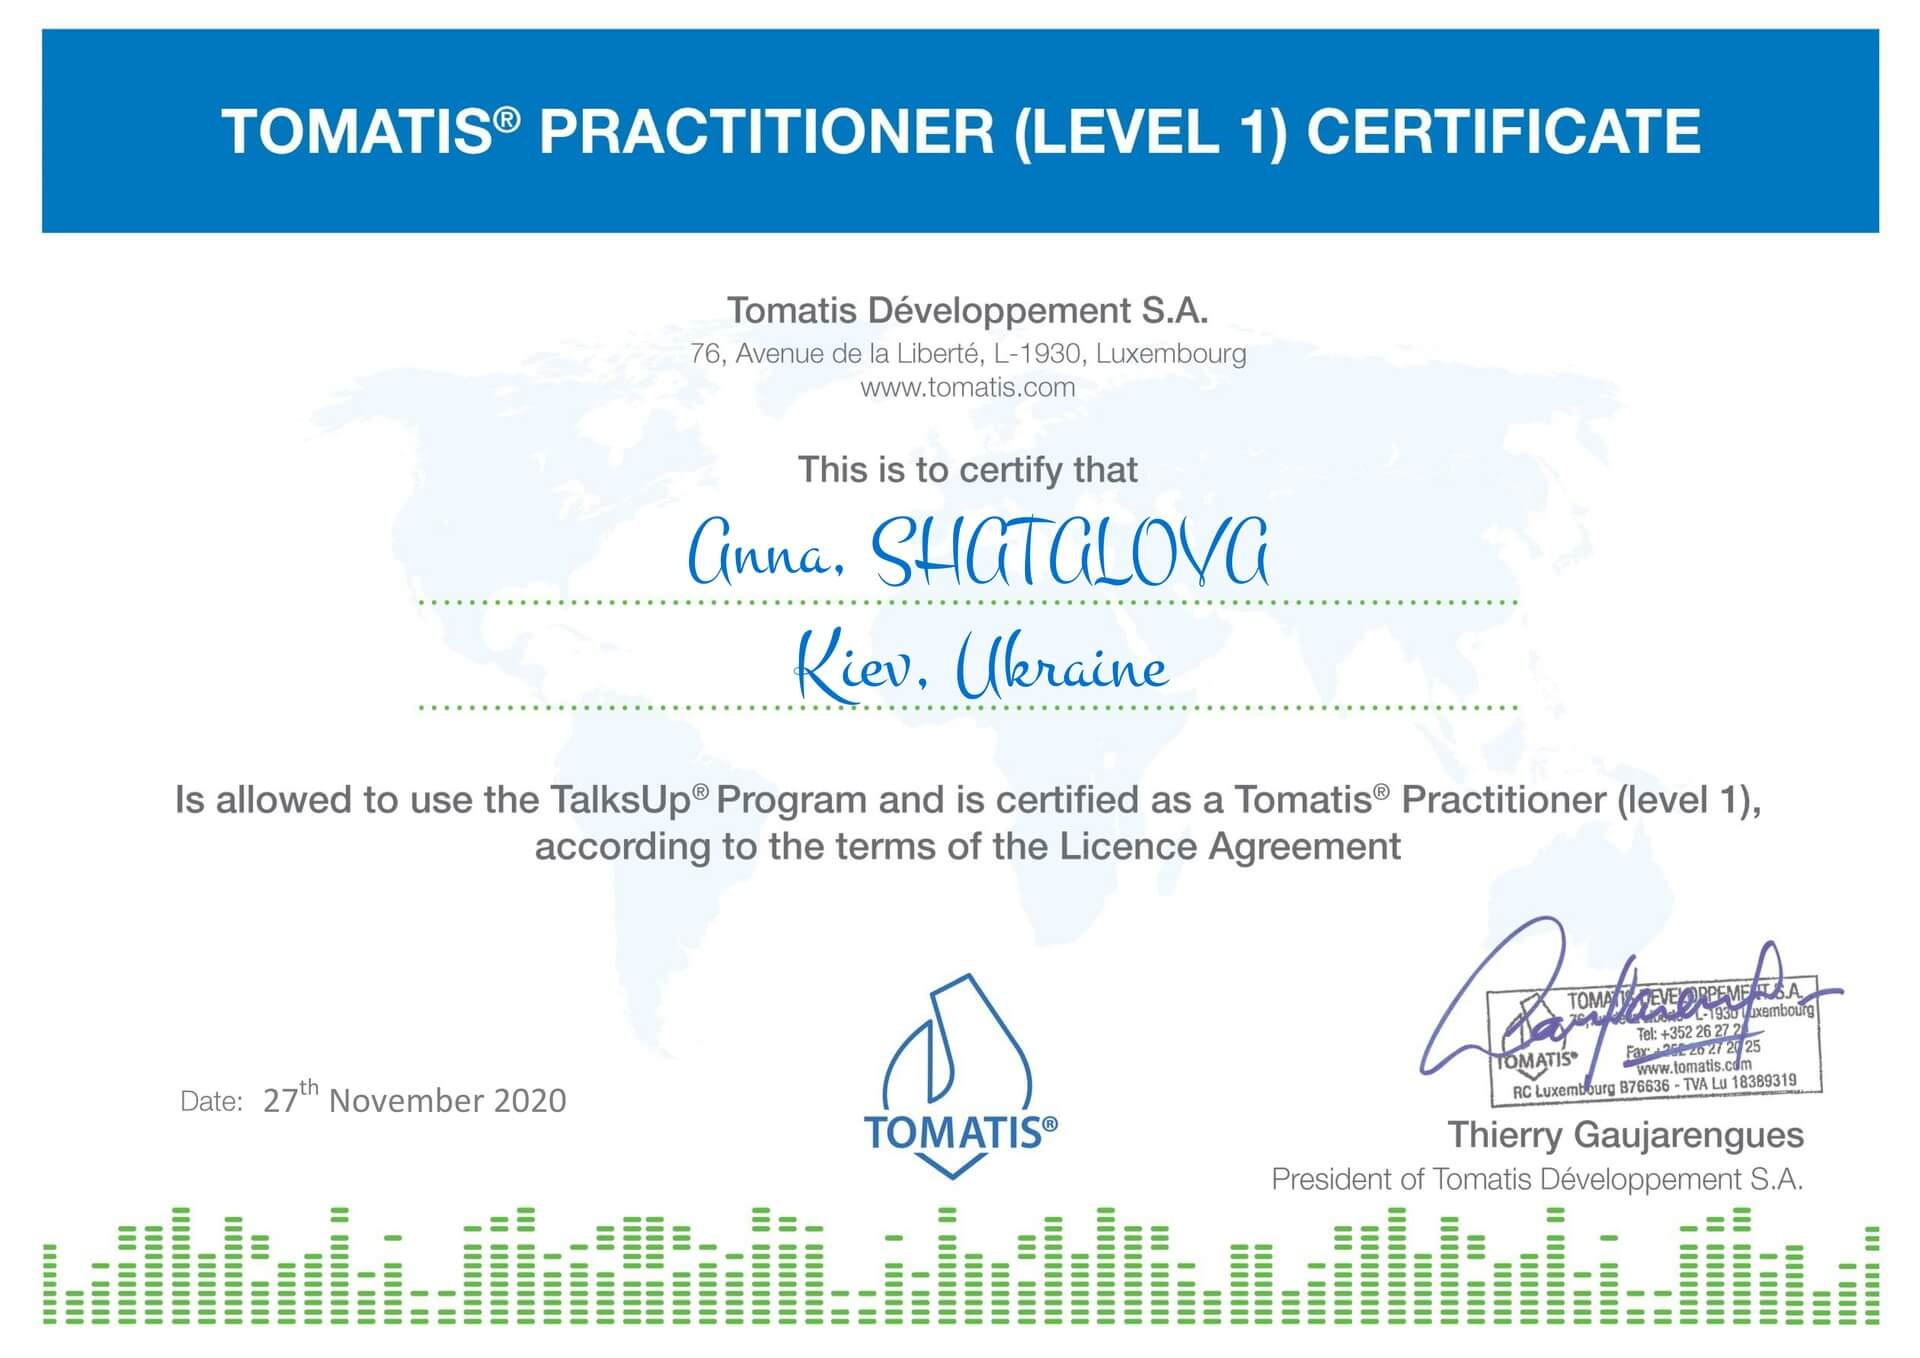 Tomatis Practitioner (Level 1) Certificate